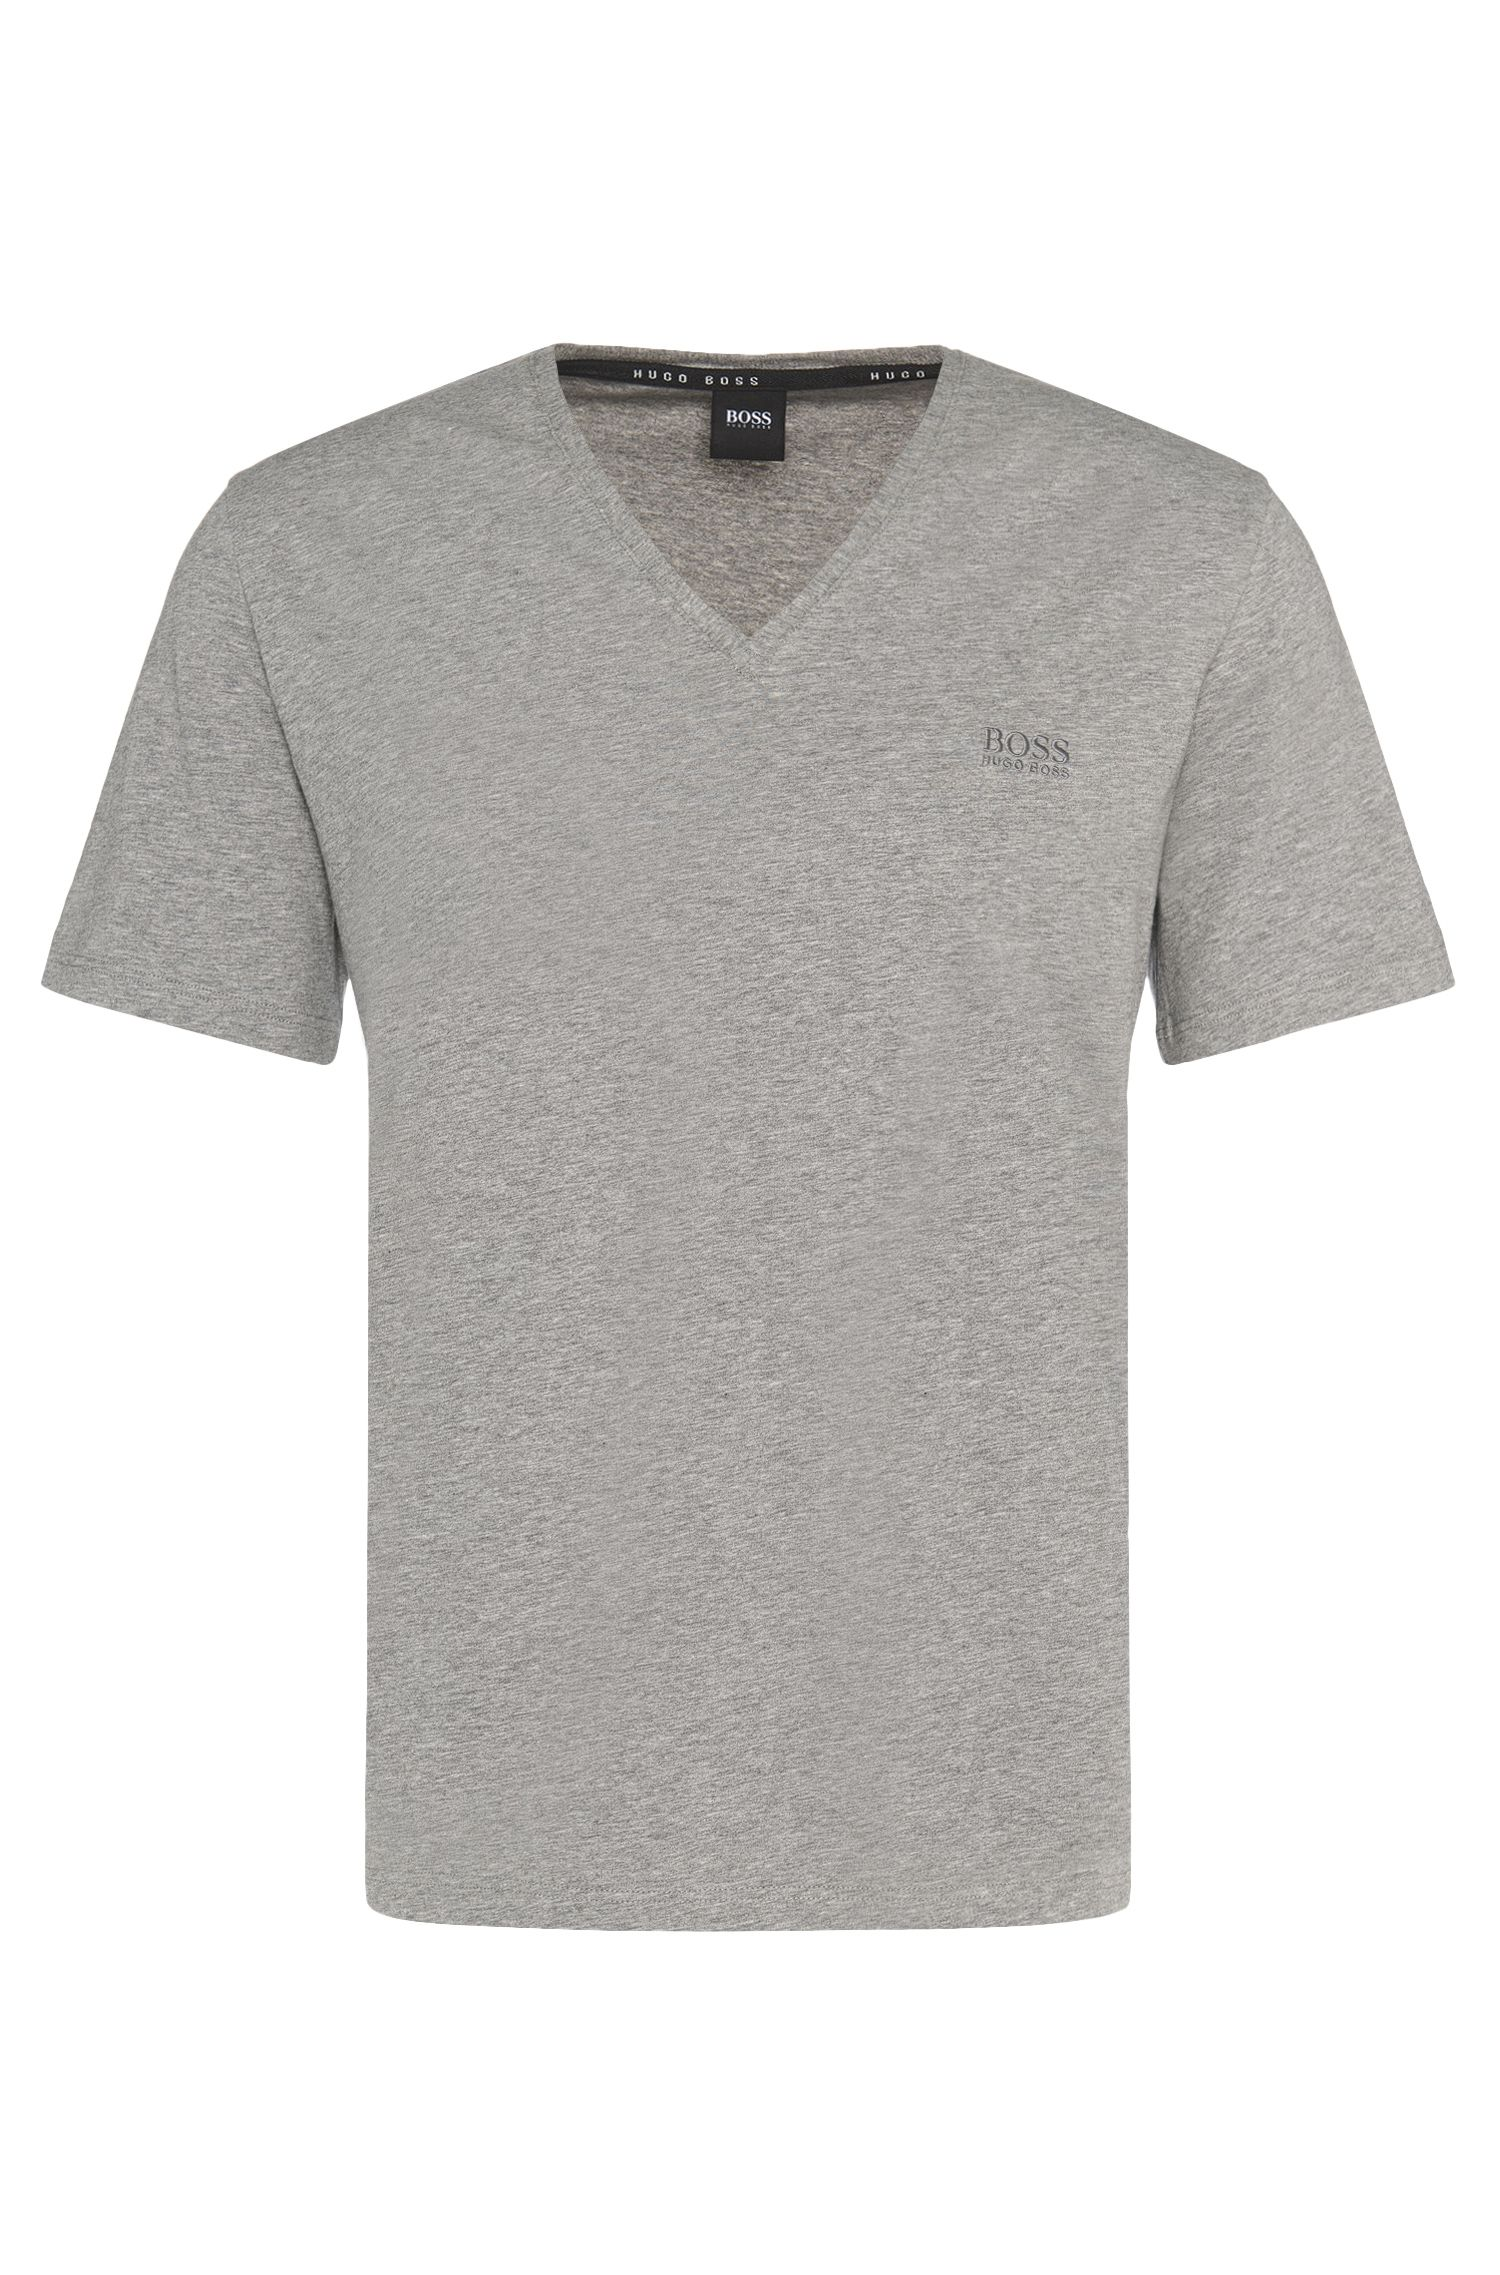 Regular-fit t-shirt in stretch cotton blend: 'Shirt VN'